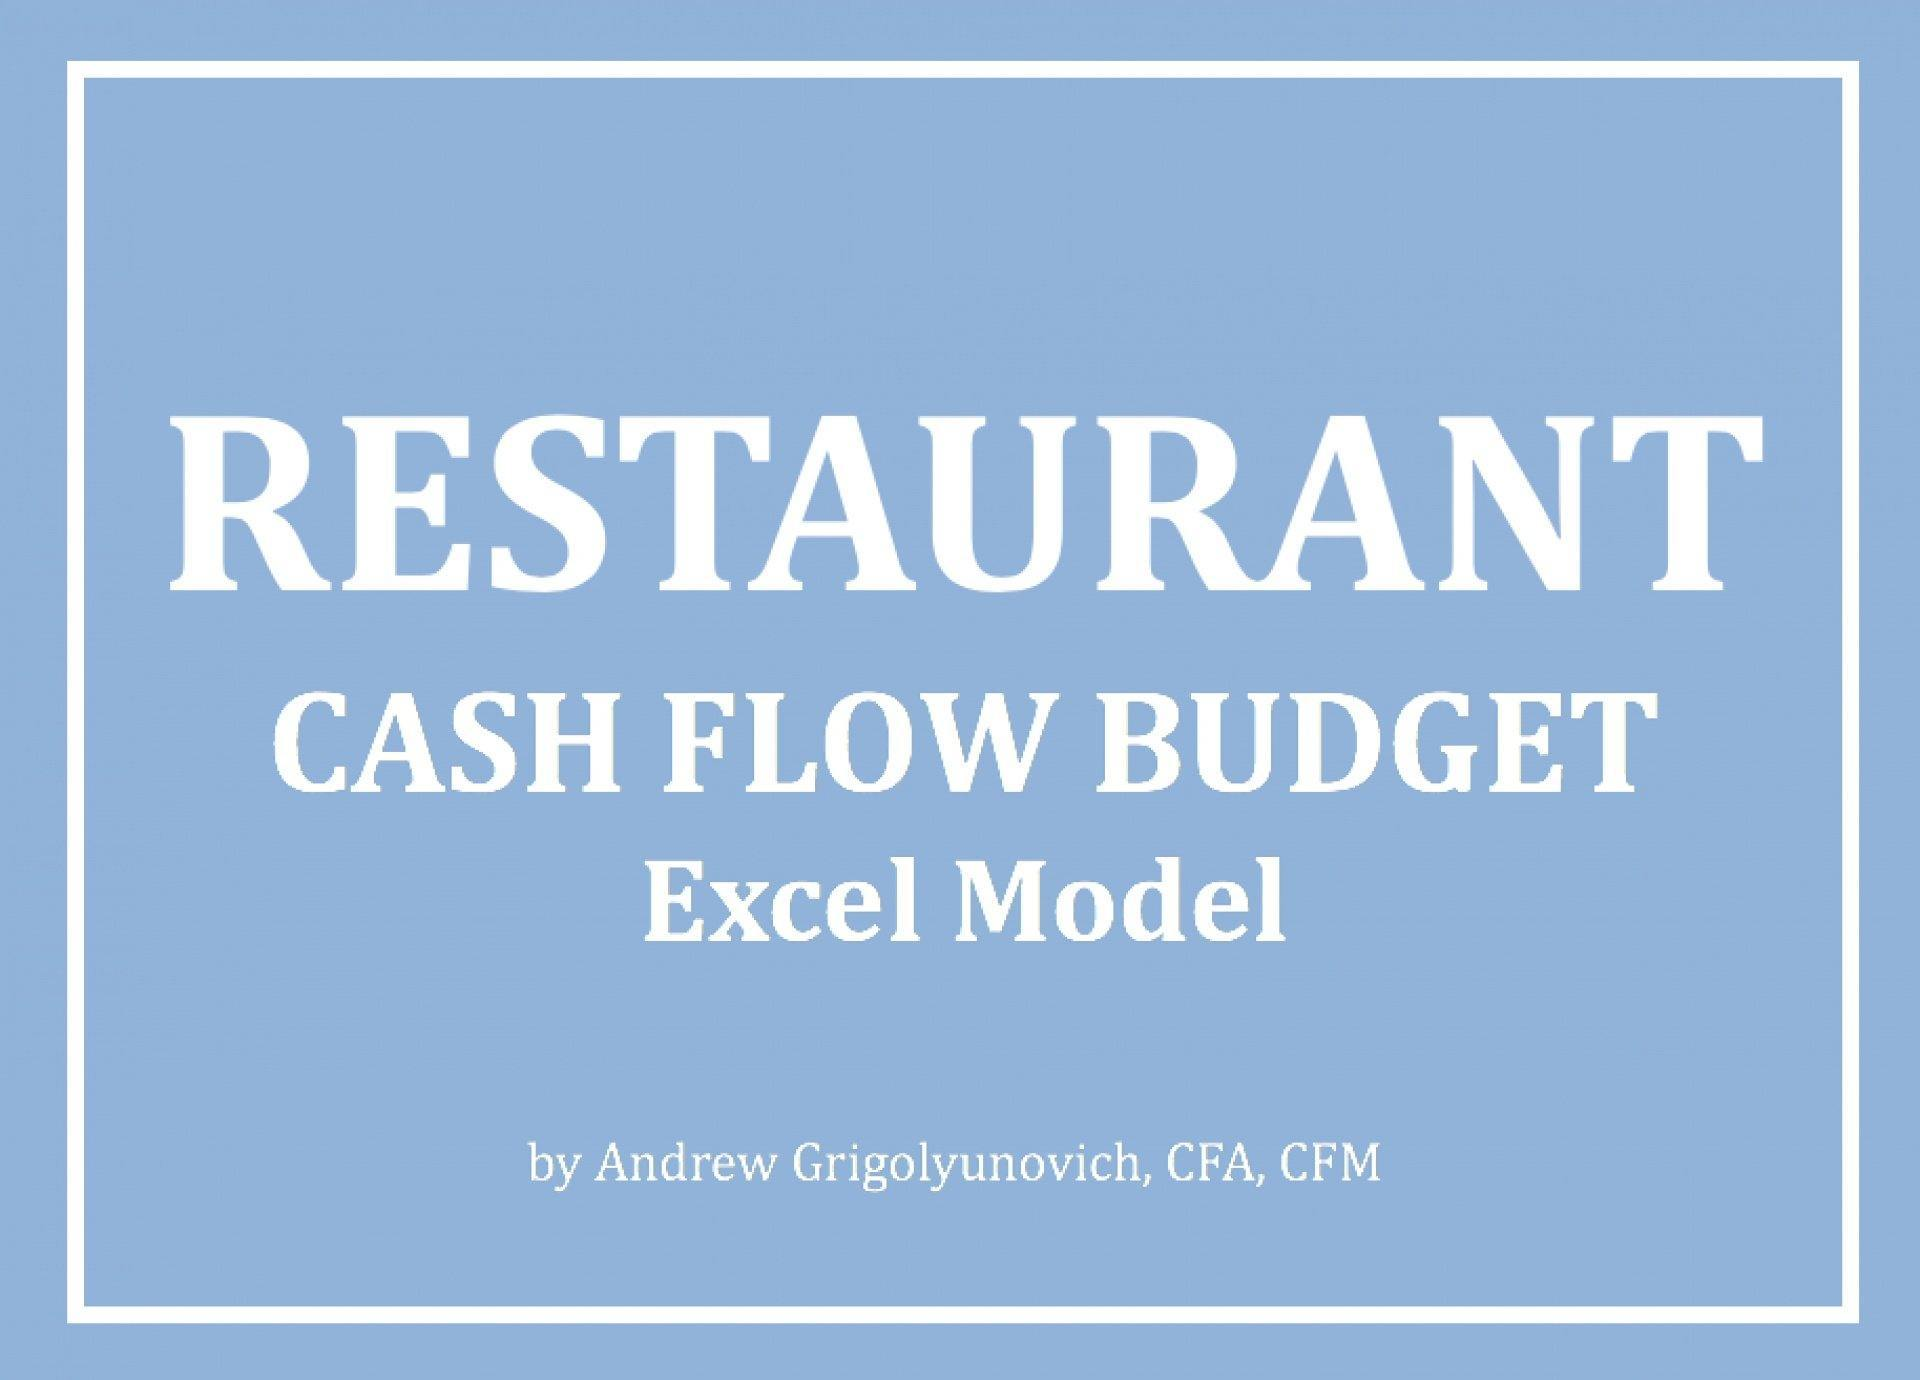 Restaurant - Cash Flow Budget Excel Model - Templarket -  Business Templates Marketplace